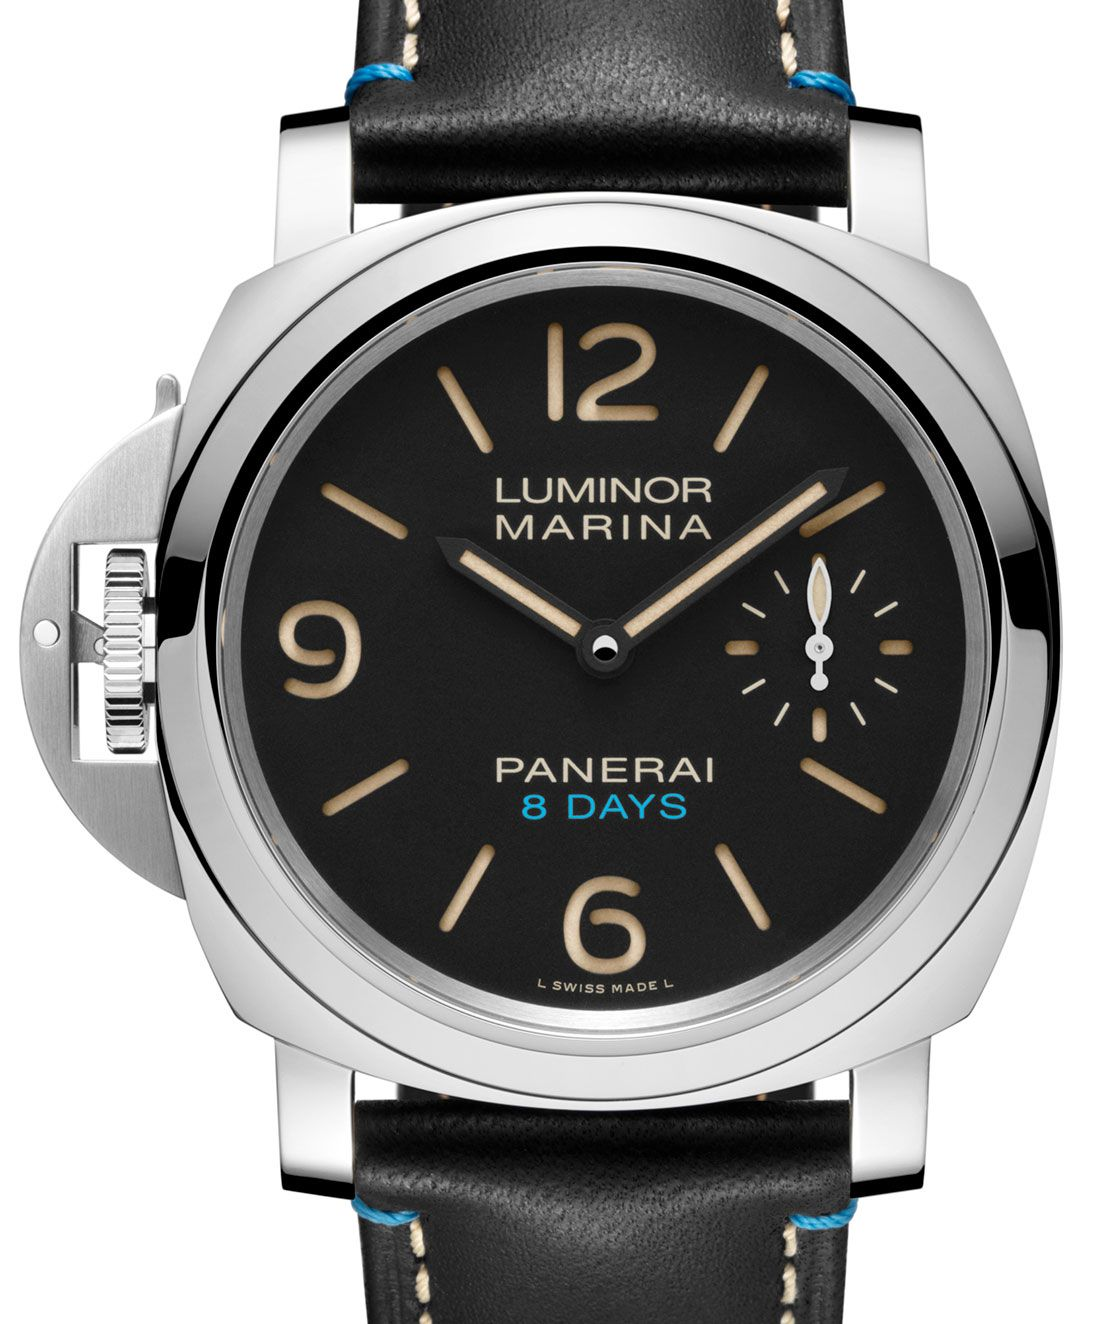 c2427732005 Panerai Luminor Marina 8-Days Power Reserve Left-Hand PAM796 Watch  panerai   watches  luminor  menswatches